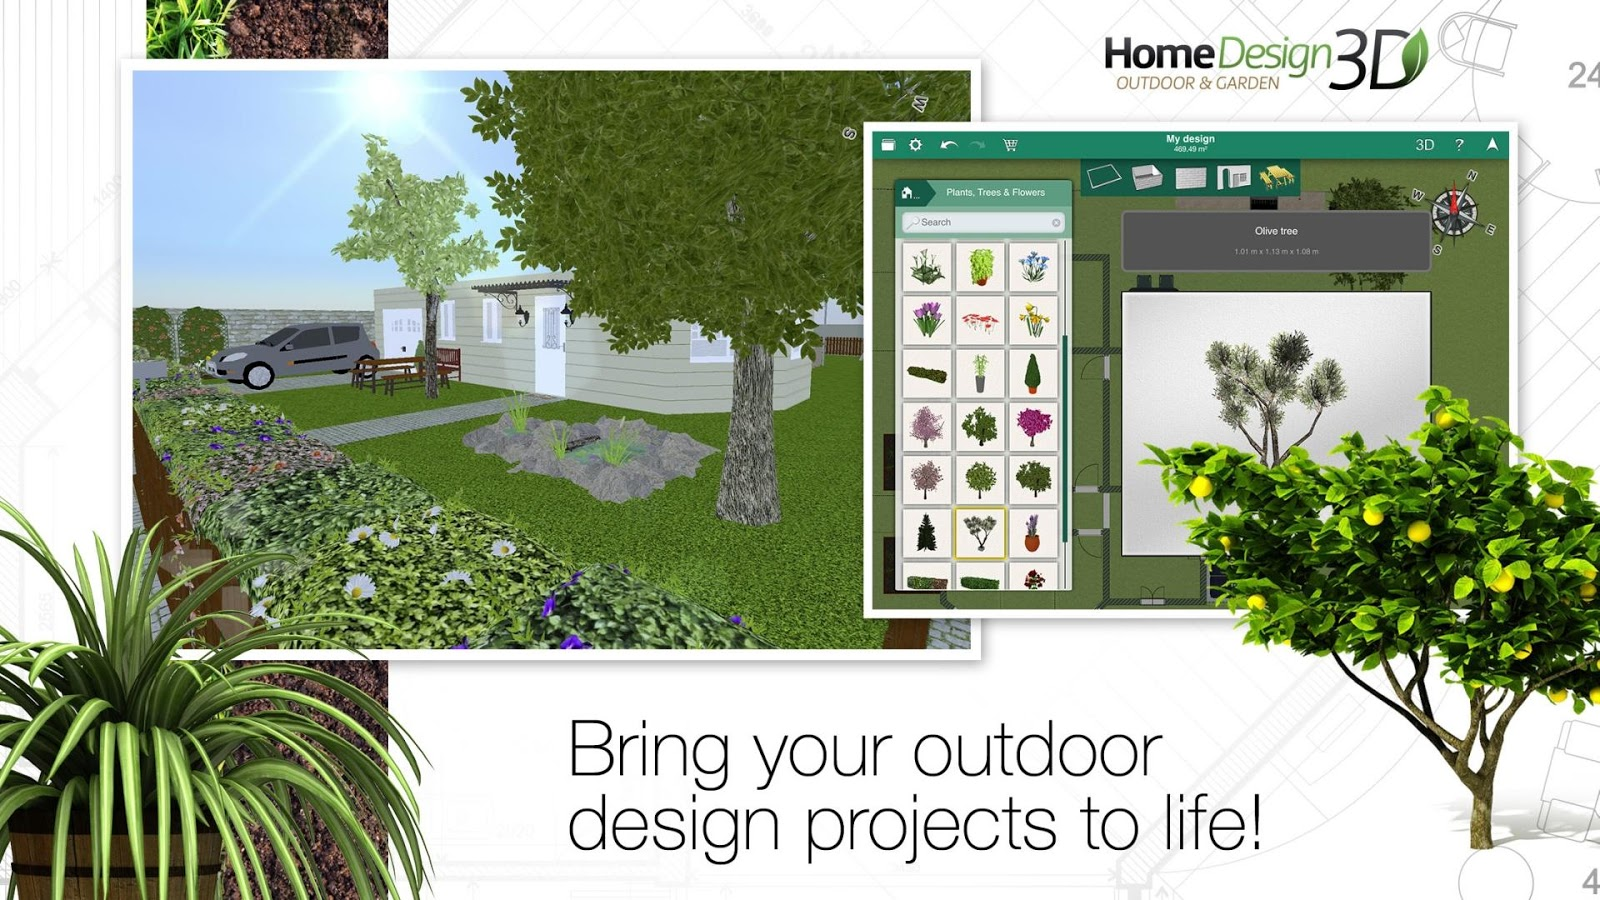 Home design 3d outdoor garden slides into the play store Home design android